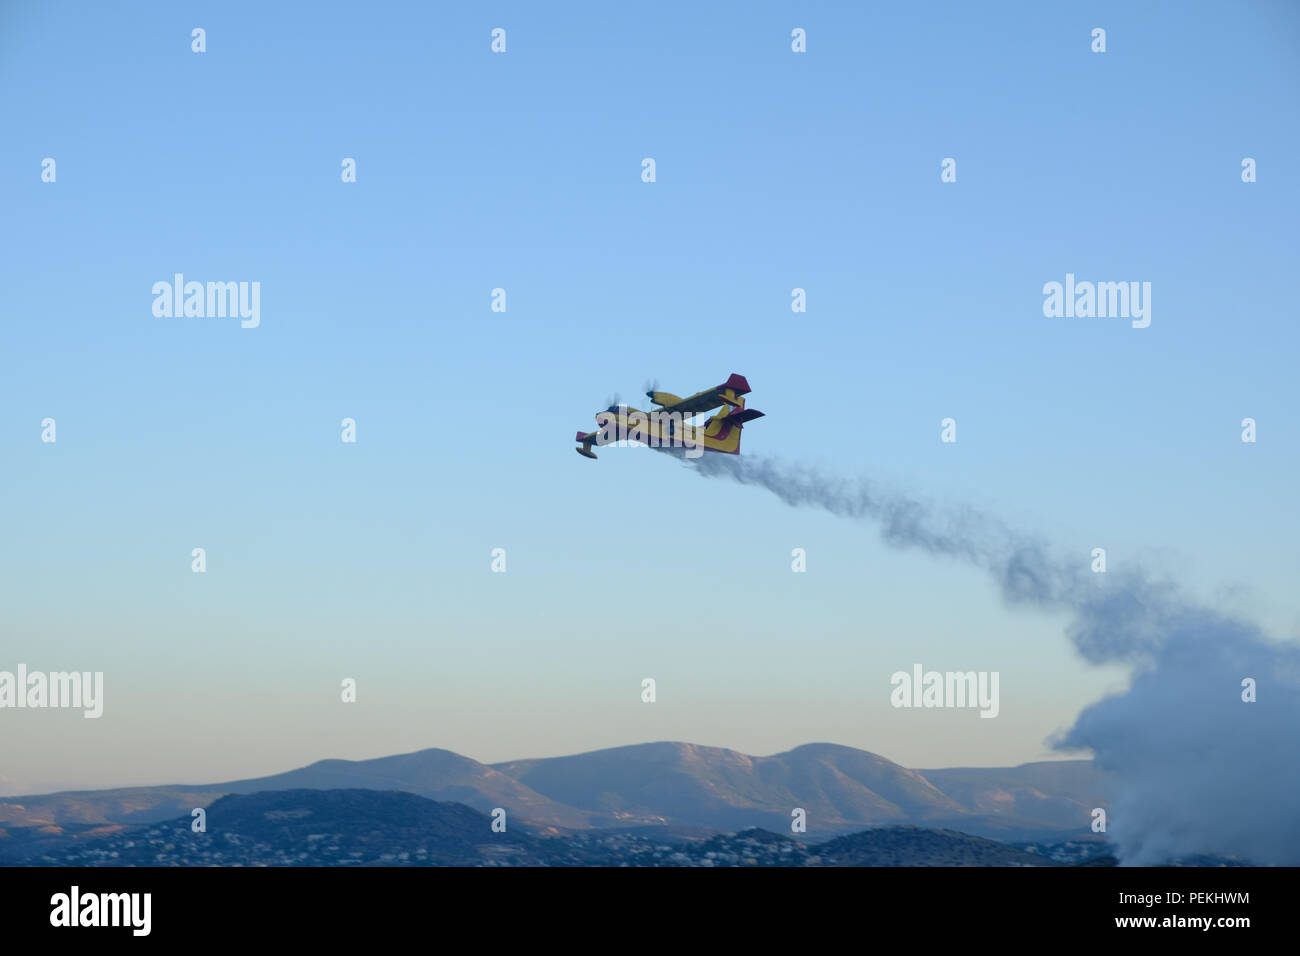 Emergency fire service aeroplane spraying water preventing the fire from spreading further on the mountains of Saronida, East Attica, Greece, Europe. Stock Photo